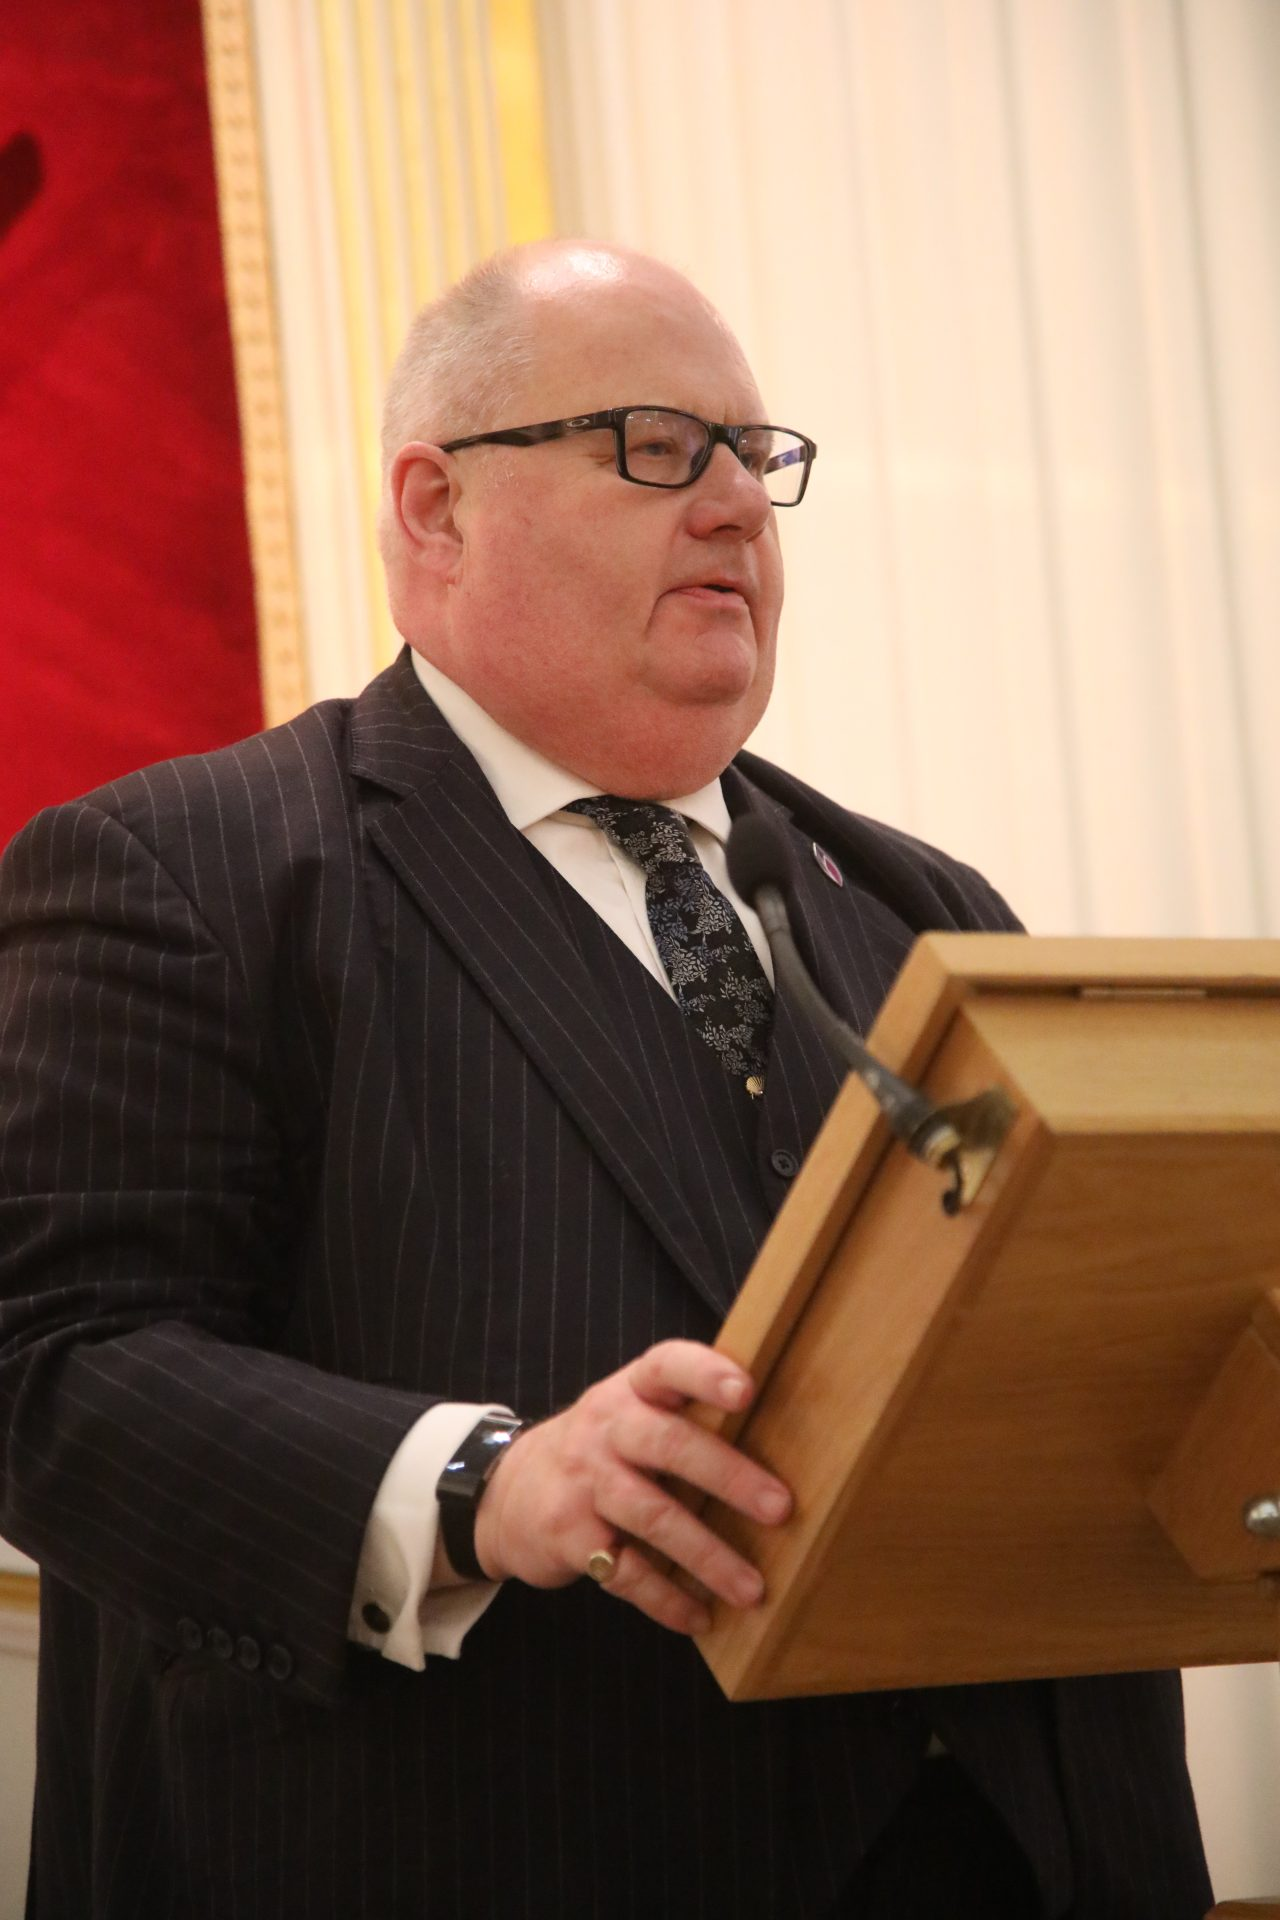 Sir Eric Pickles